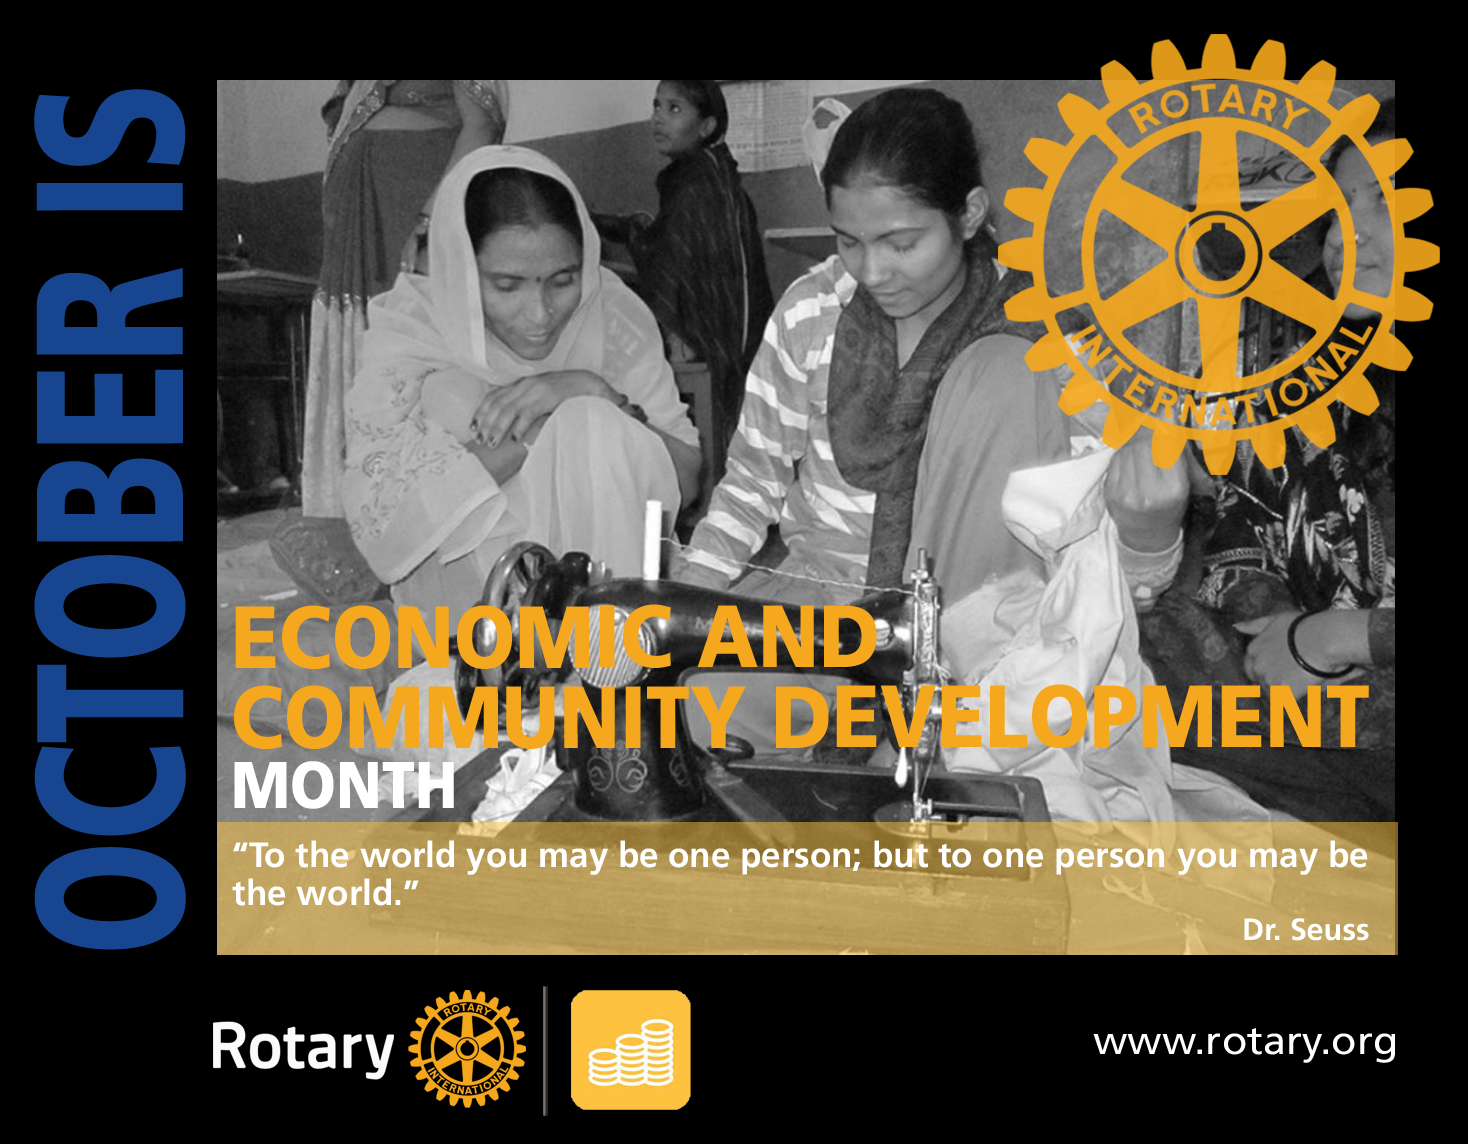 Rotary Economic and Community Development Month